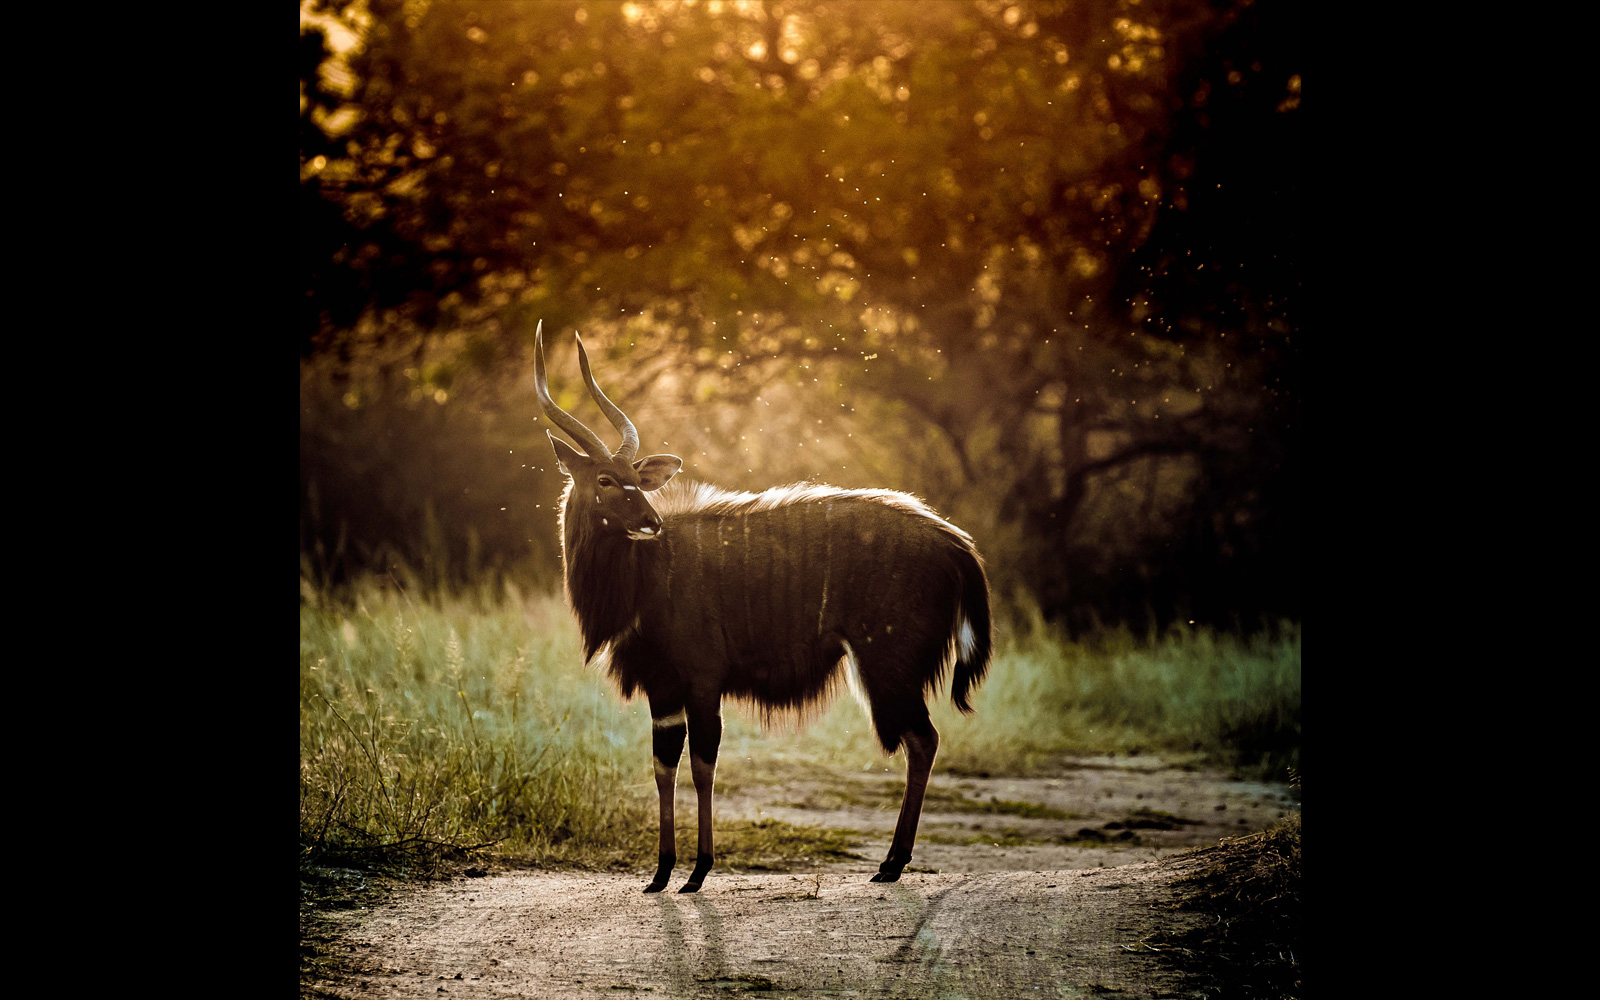 A nyala bull soaks up the final moments of the sun in Greater Kruger National Park, South Africa © Samuel Cox